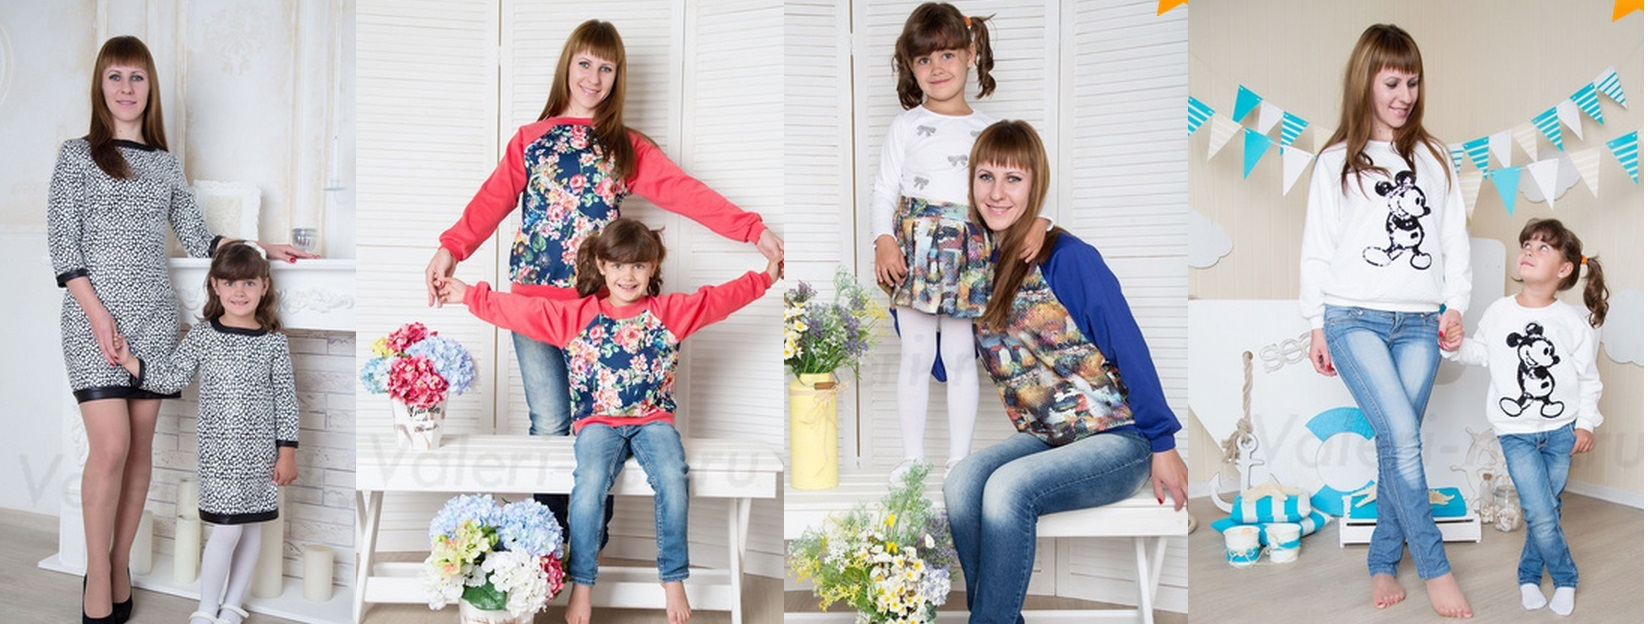 NEW! Like Me - ������ � ����� family look (�������� �����) - ��� ������� � �� ���.